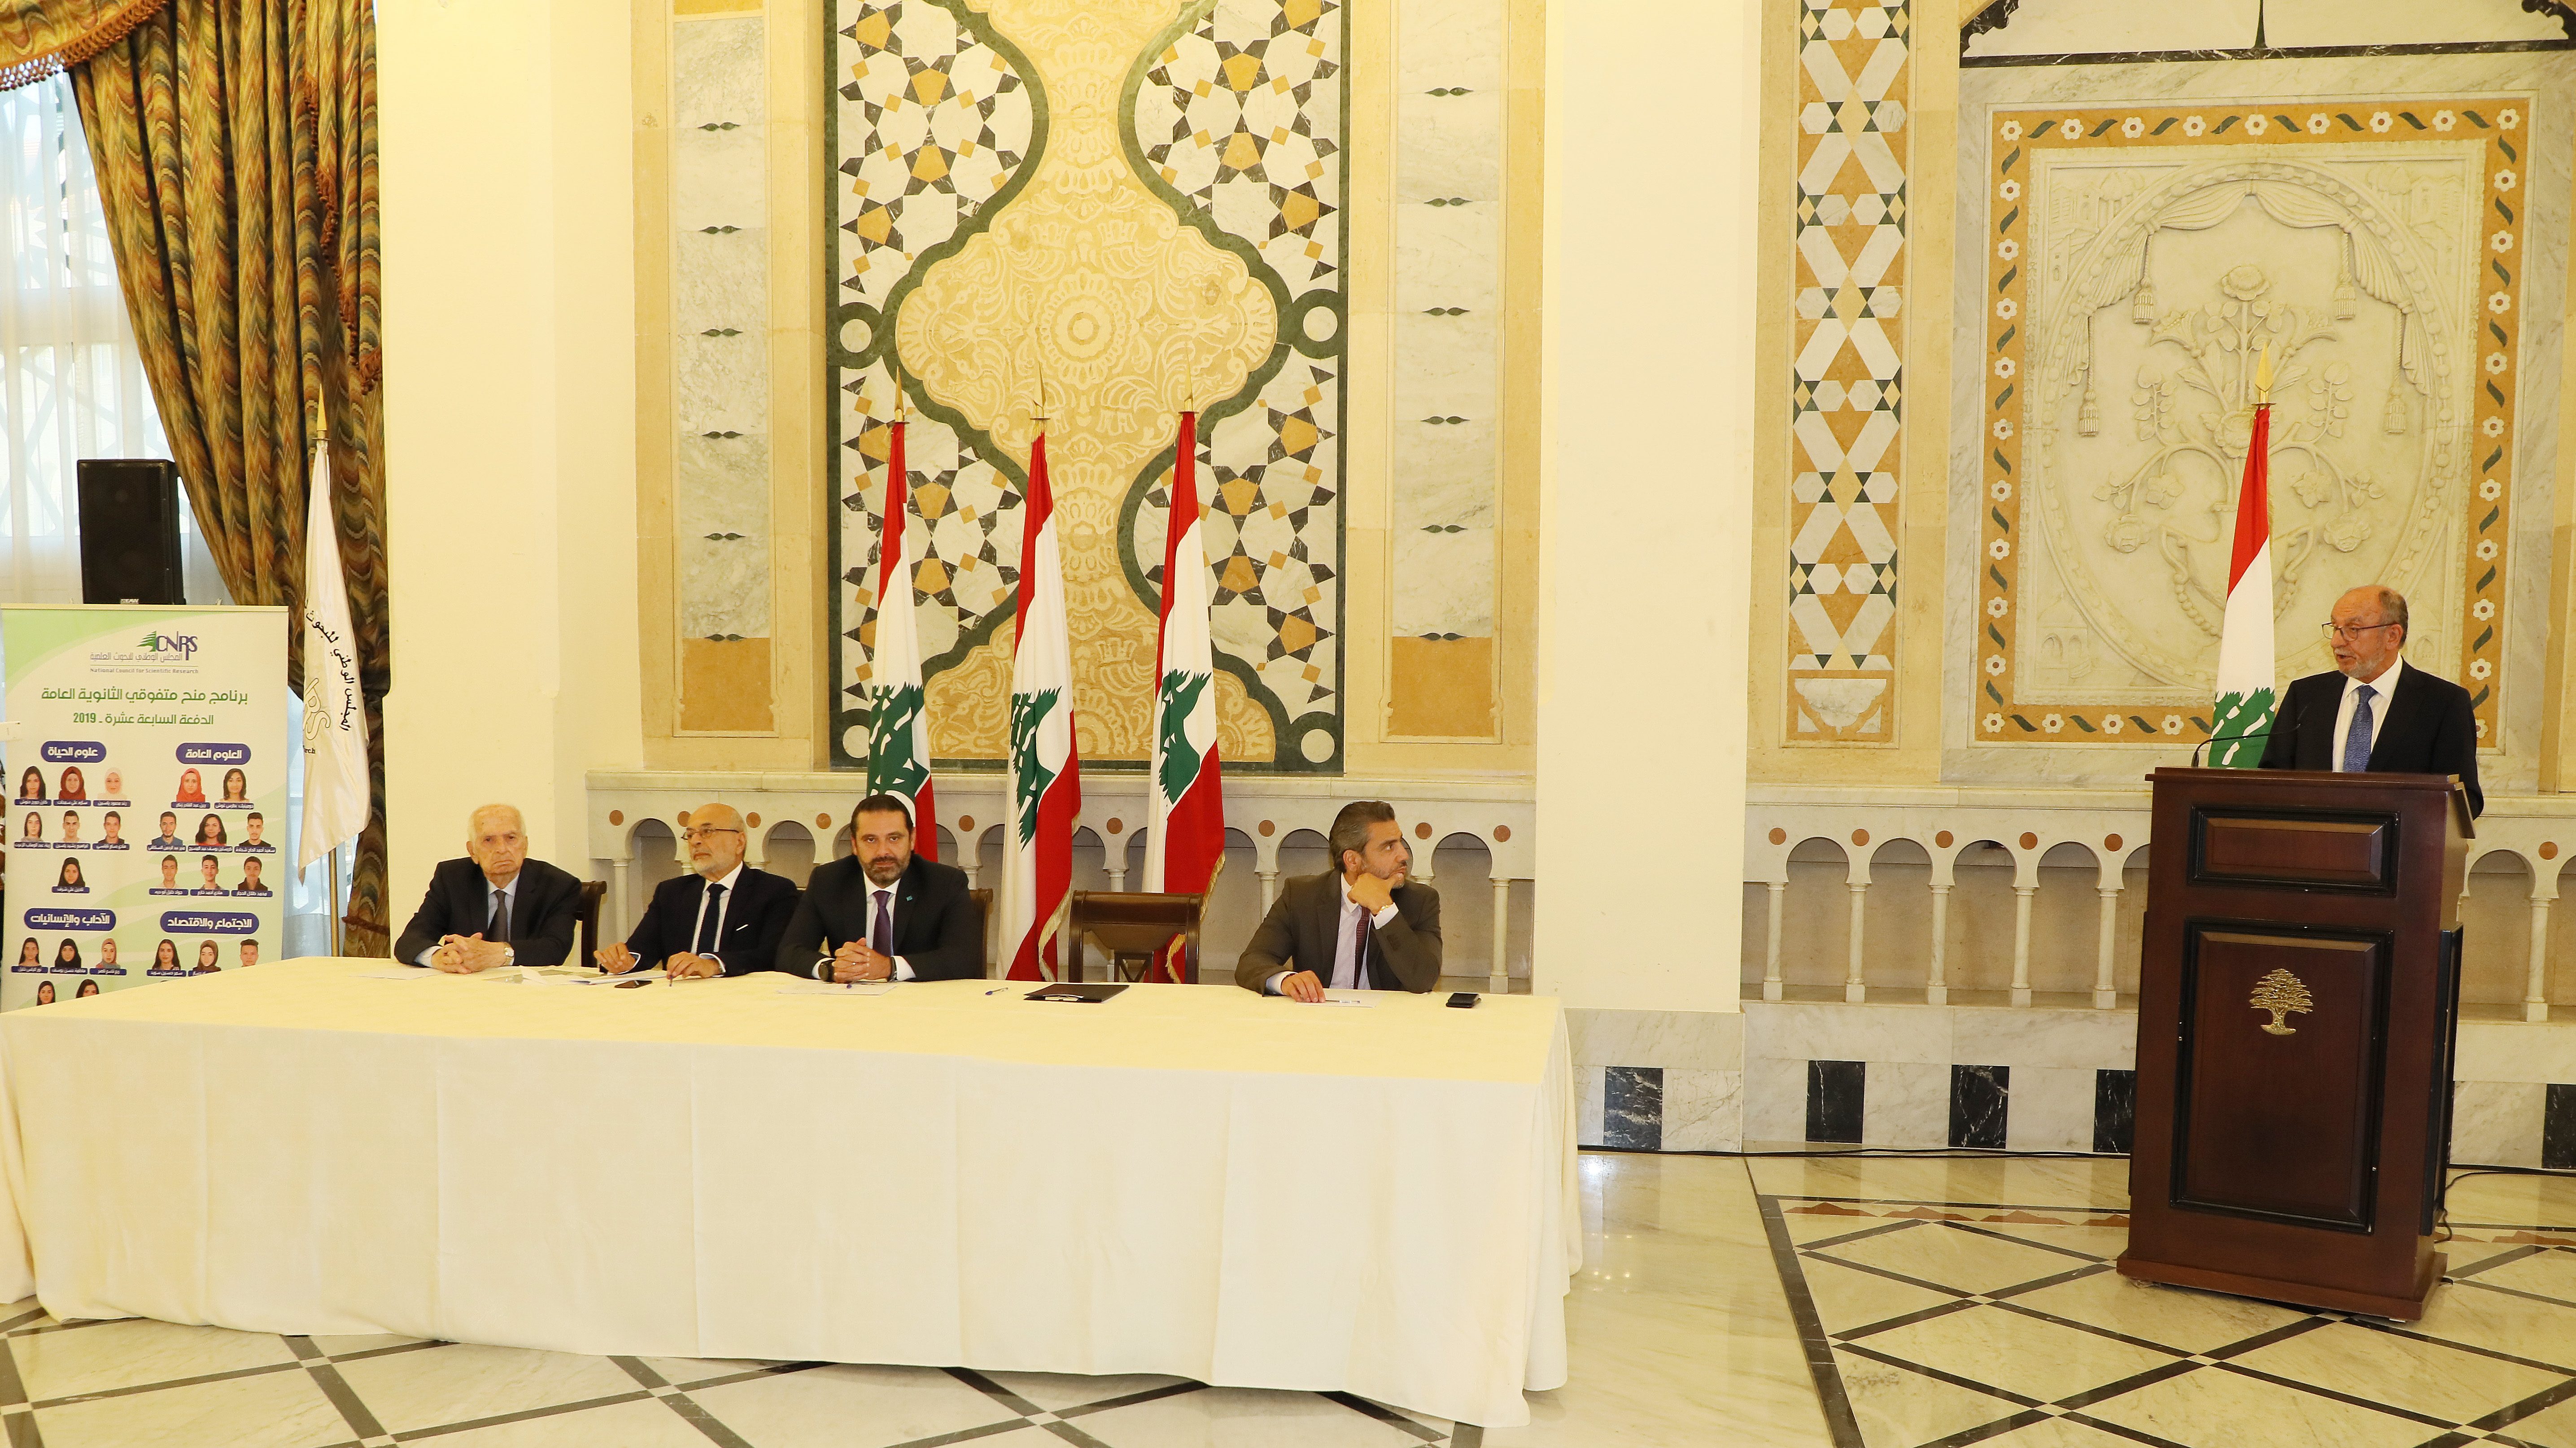 Pr Minister Saad Hariri Honors a Delegation from Lebanese Students 5